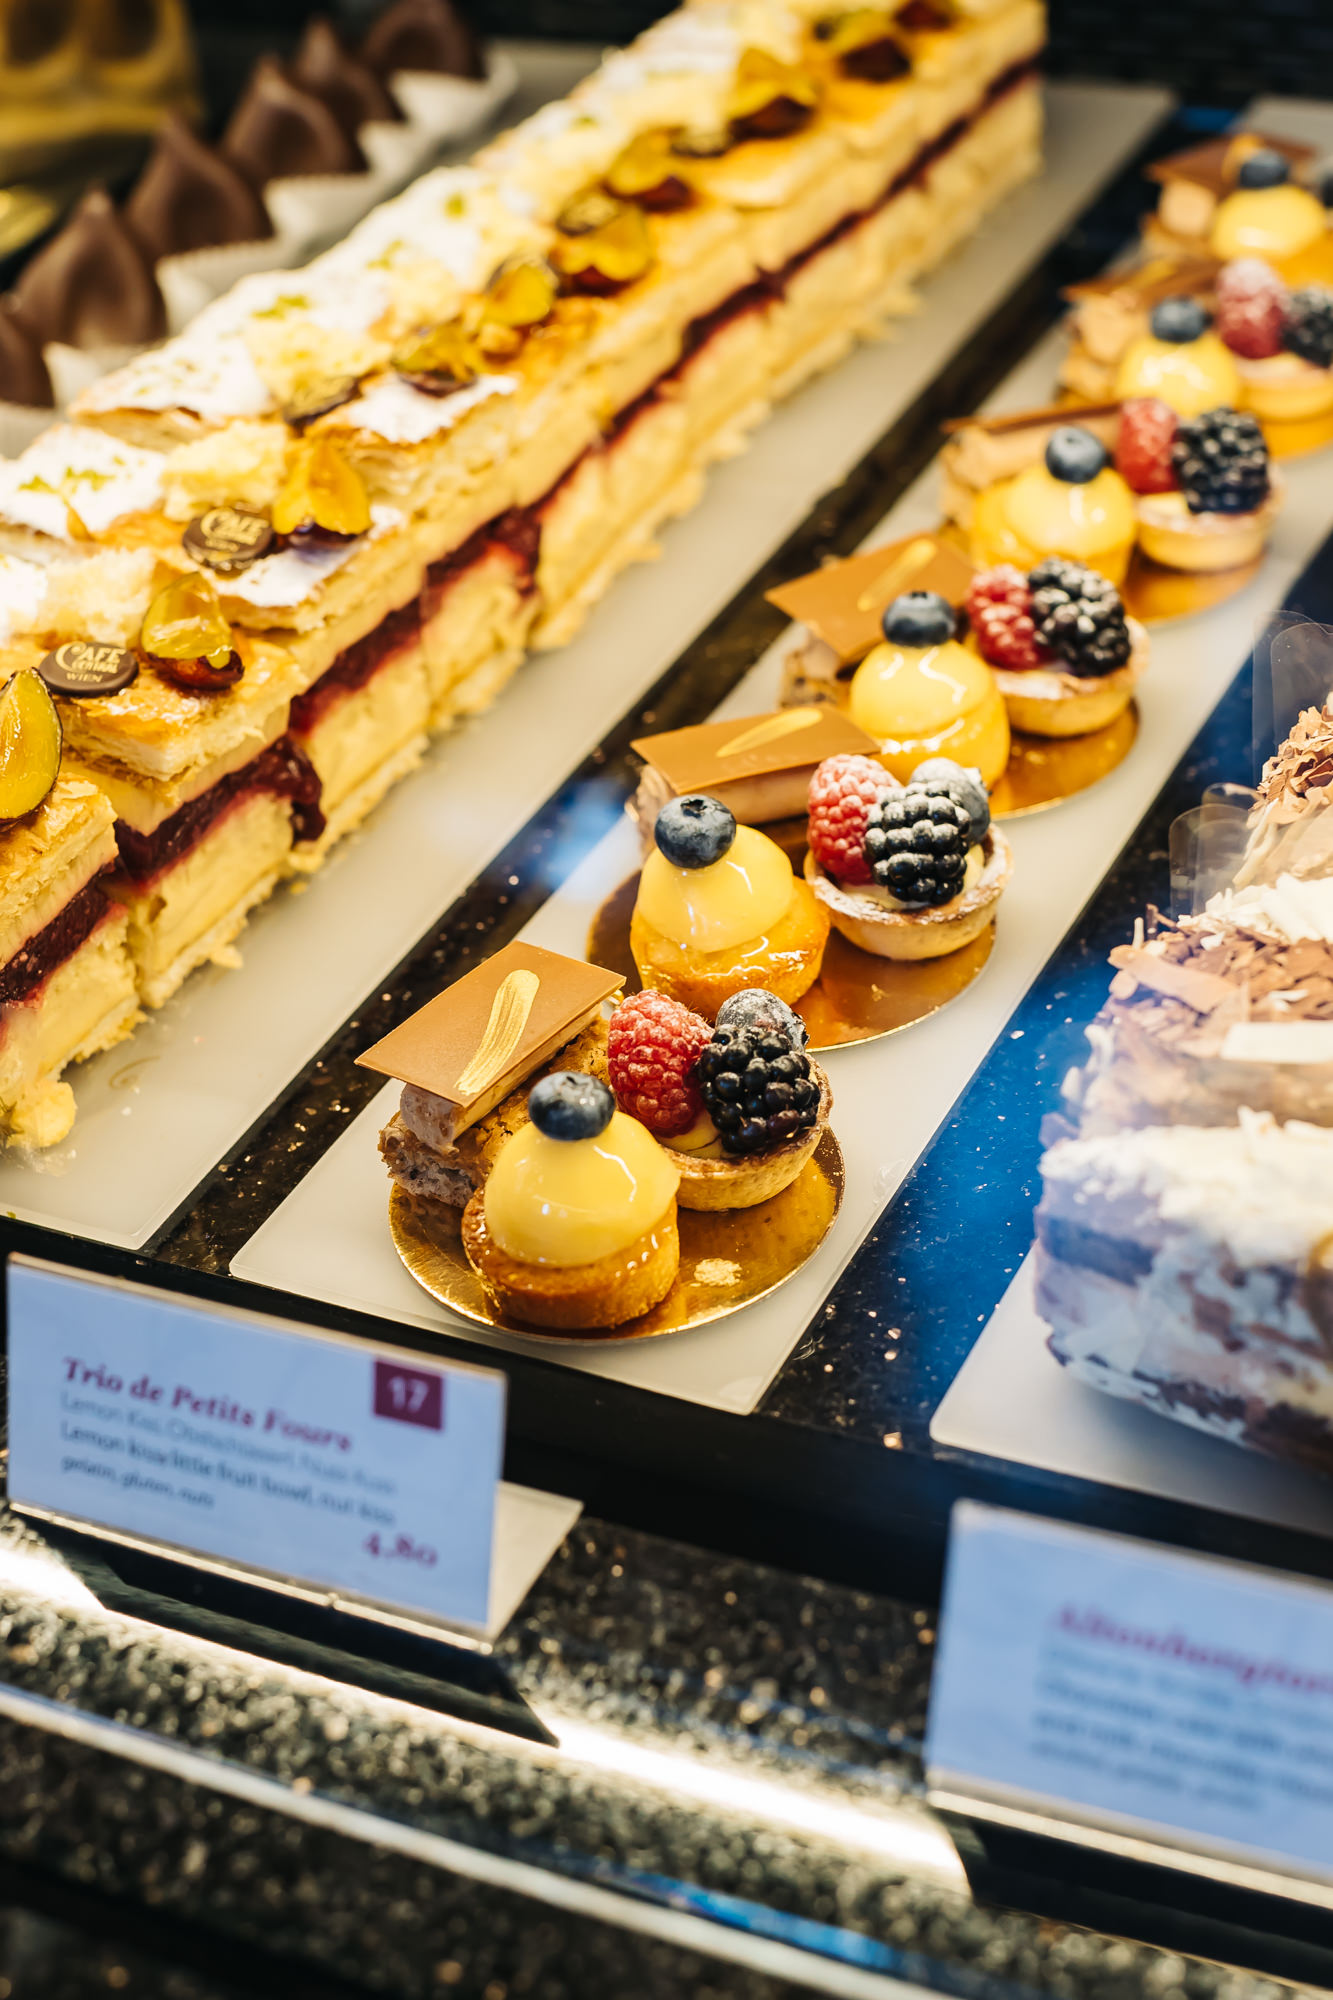 Loads of delicious desserts at Cafe Central in Vienna